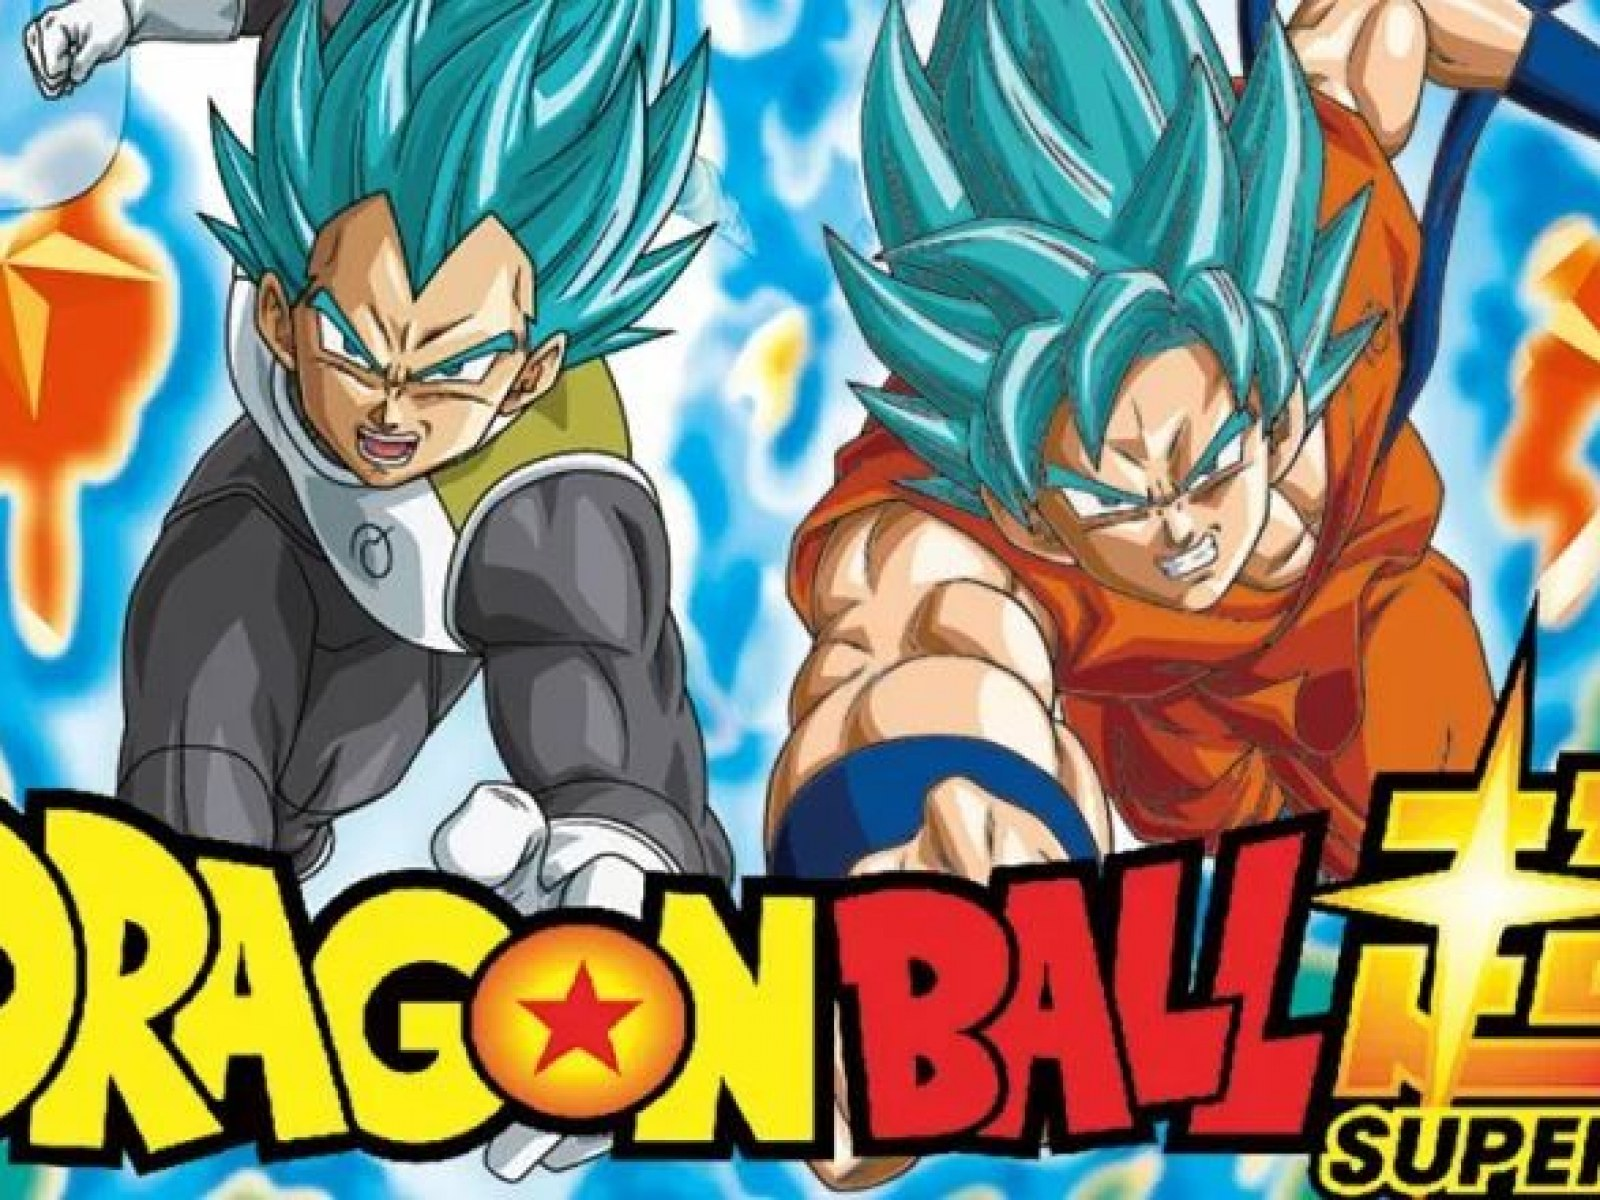 New Dragon Ball Super Episodes Releasing Soon Says New Report